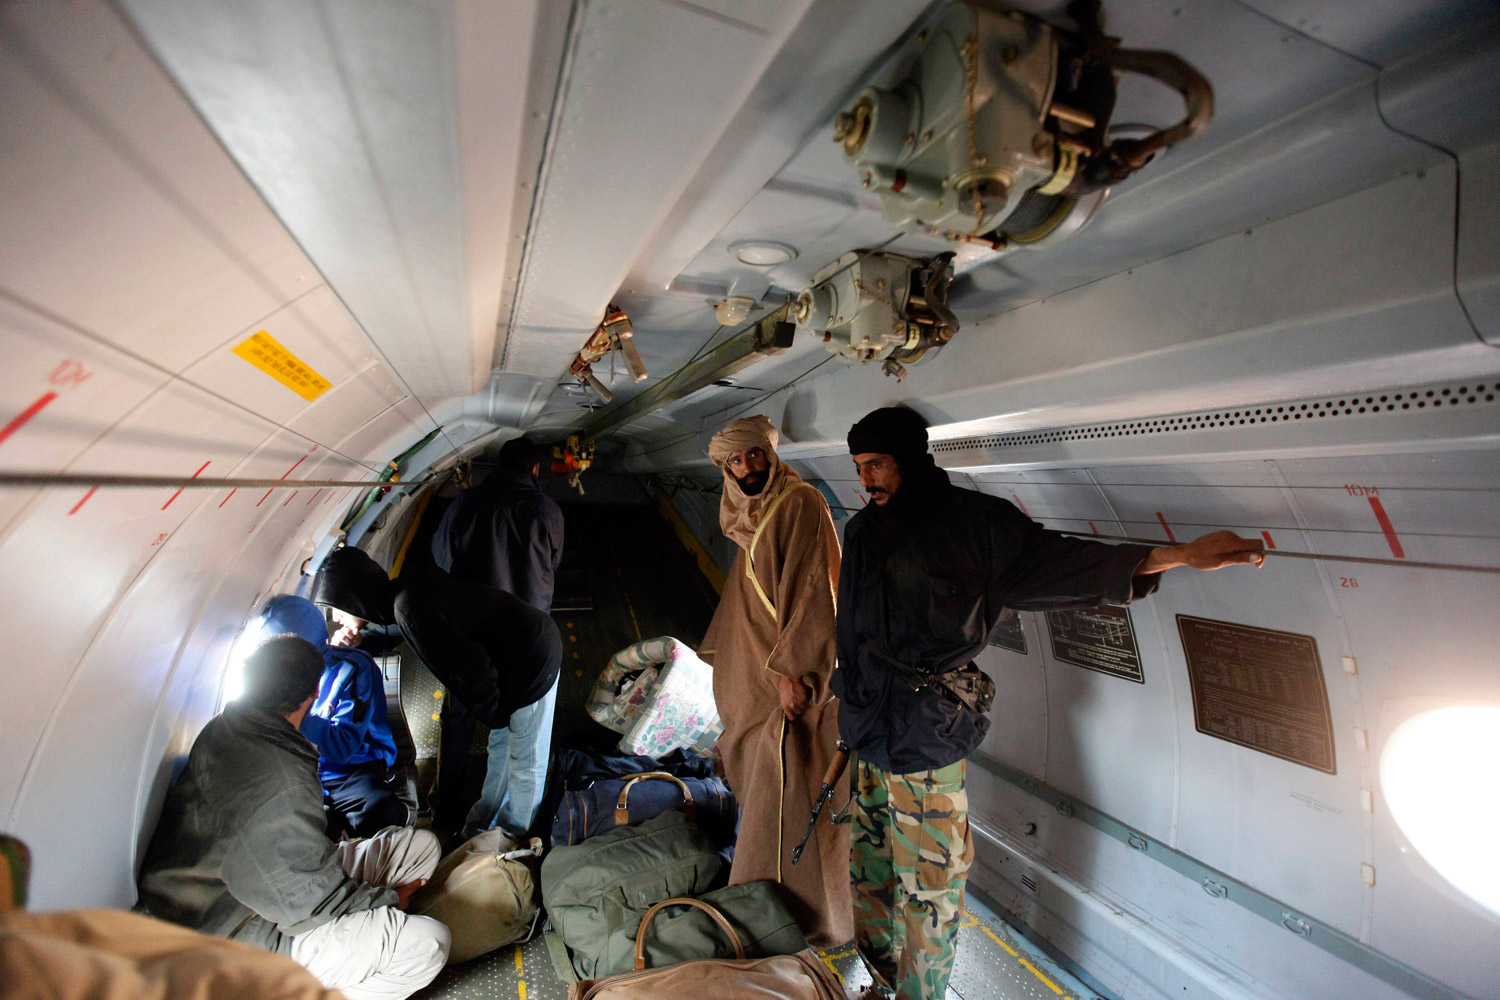 November 19, 2011. Saif al-Islam Gaddafi (second right) is pictured standing in a plane in Zintan. Saif al-Islam Gaddafi told Reuters that he was feeling fine after being captured by some of the fighters who overthrew his father and suffering injuries to his right hand during a NATO air strike a month ago.